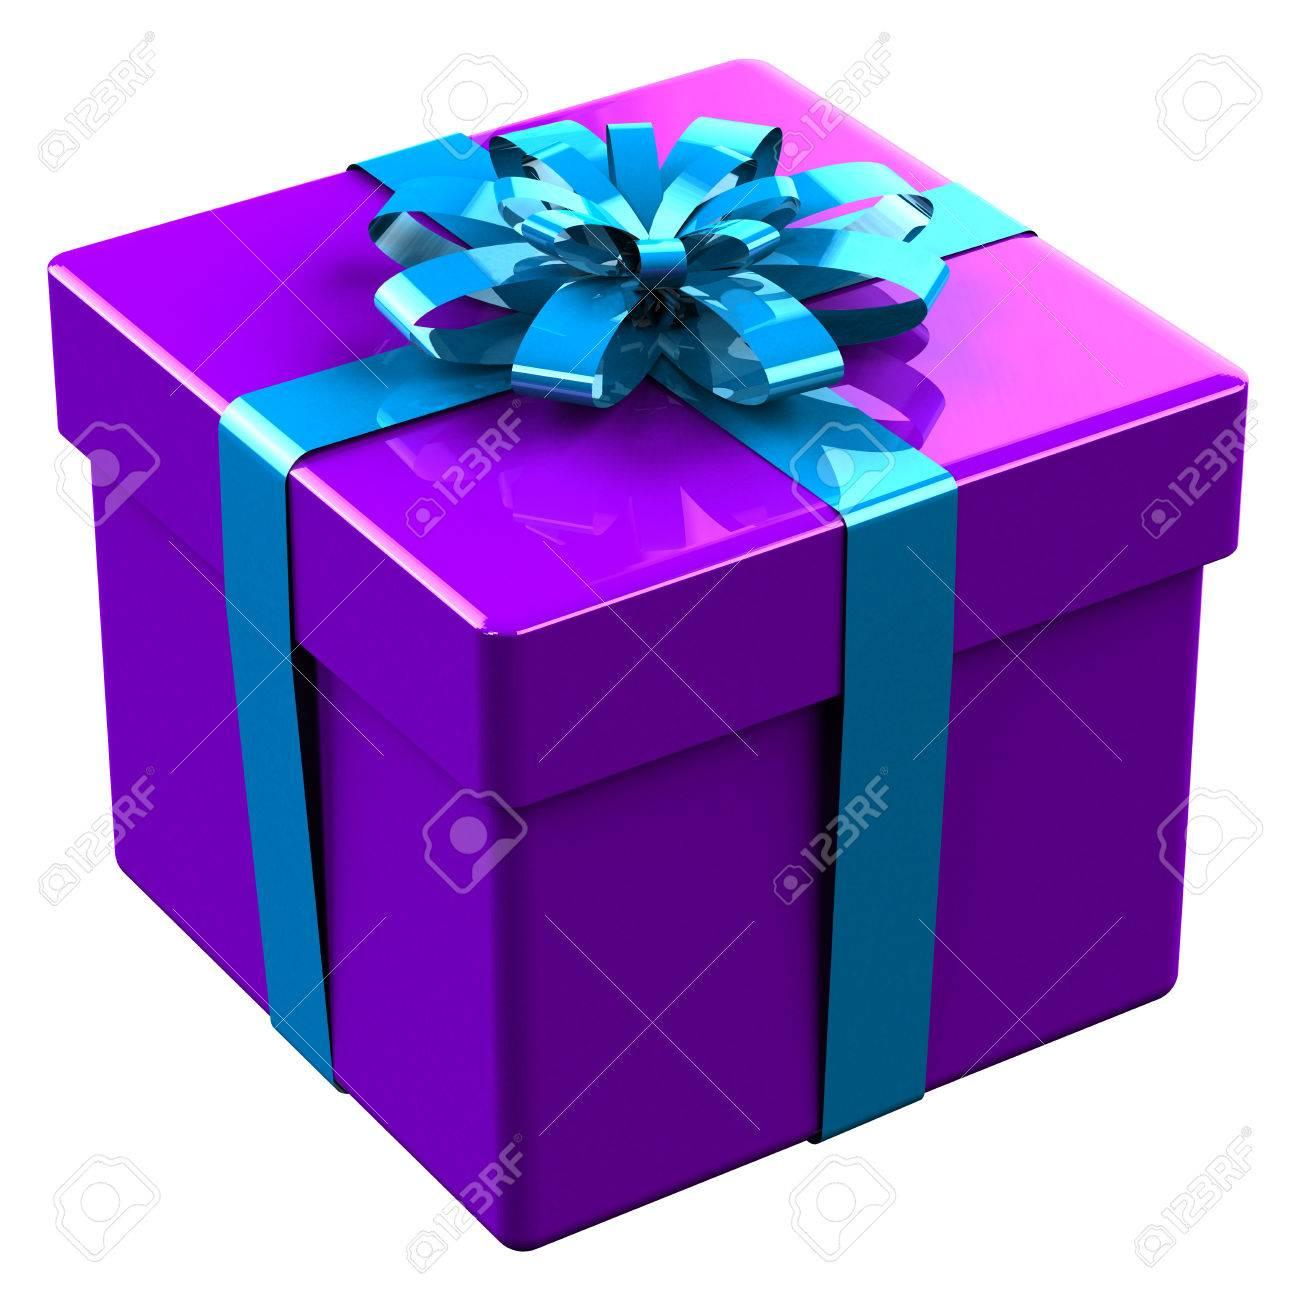 Purple gift box tied blue with a bow isolated on white background. 3D render.  sc 1 st  123RF.com : purple gift boxes - princetonregatta.org